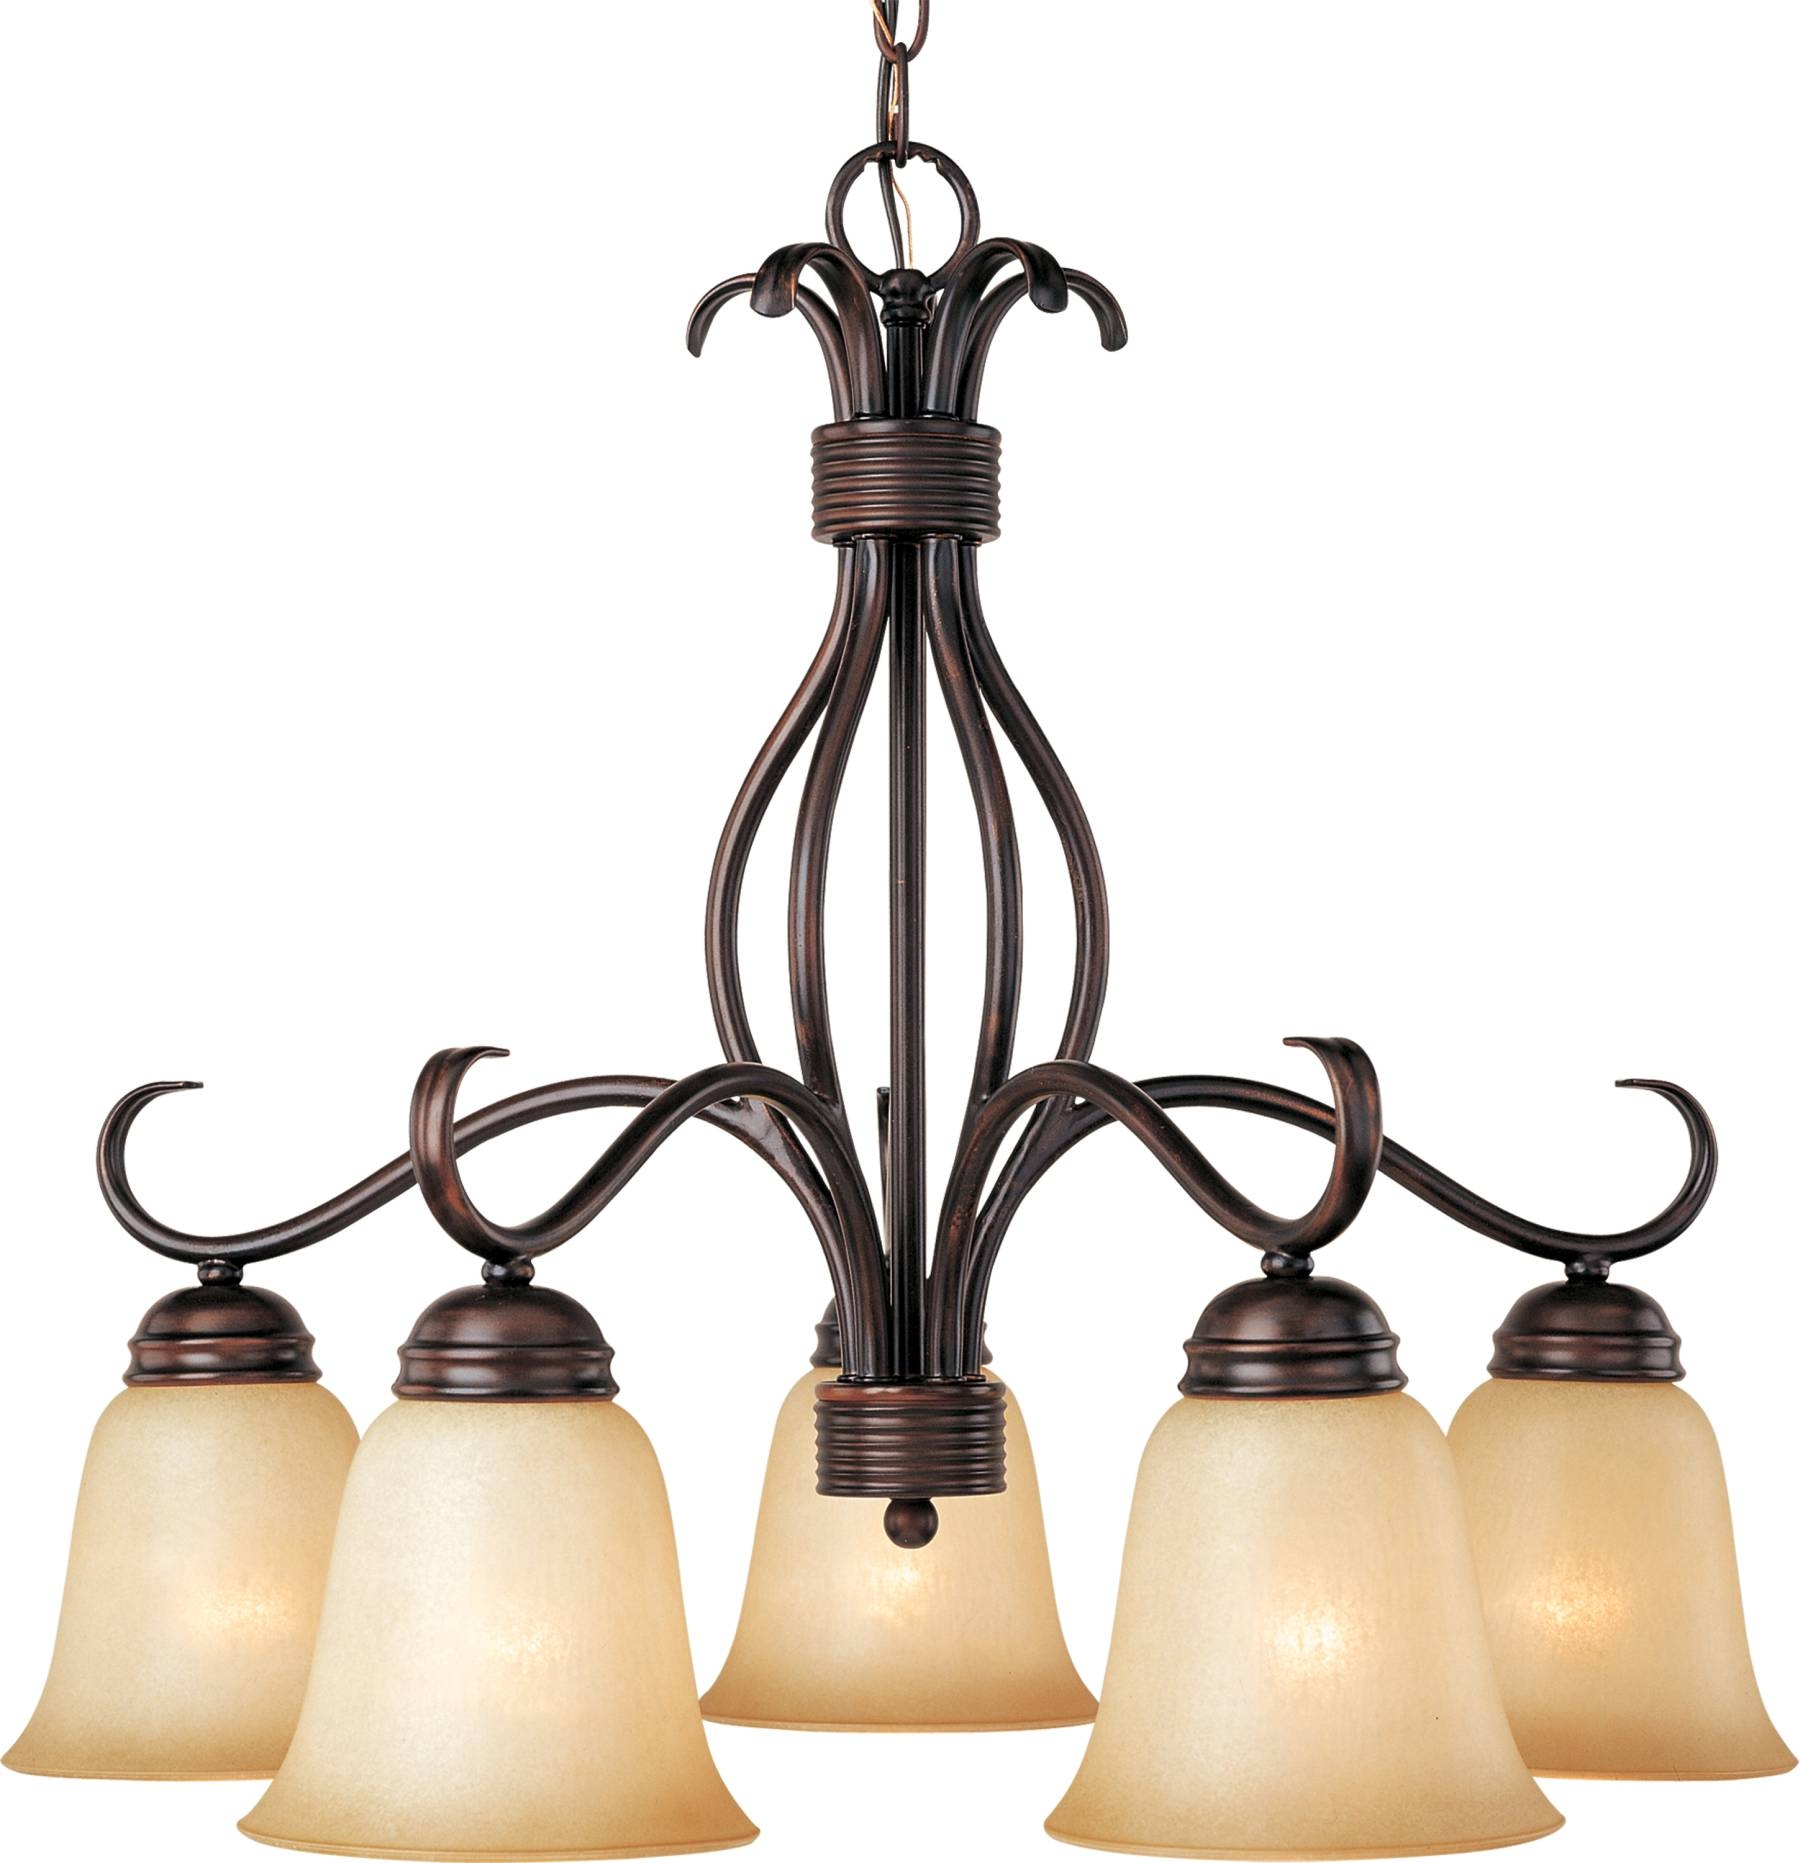 Old And Vintage Hanging Cast Iron Chandeliers With White Five Within Cast Iron Chandelier (Image 11 of 15)